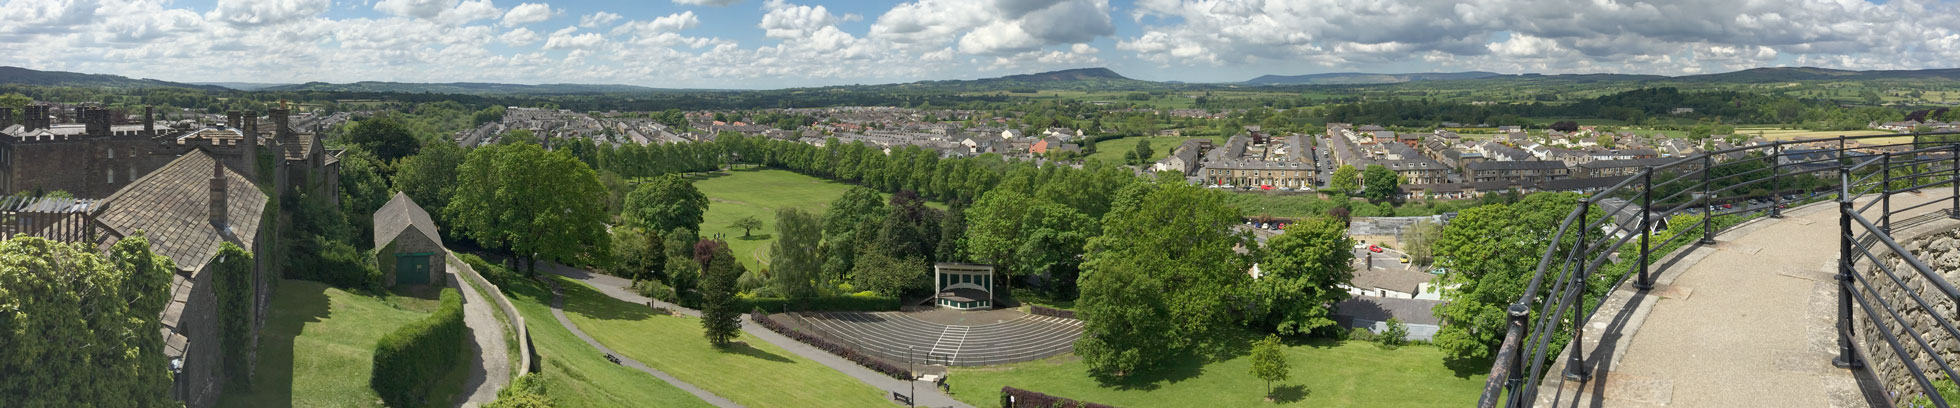 Looking towards Kemple End from the castle keep with the bandstand below.